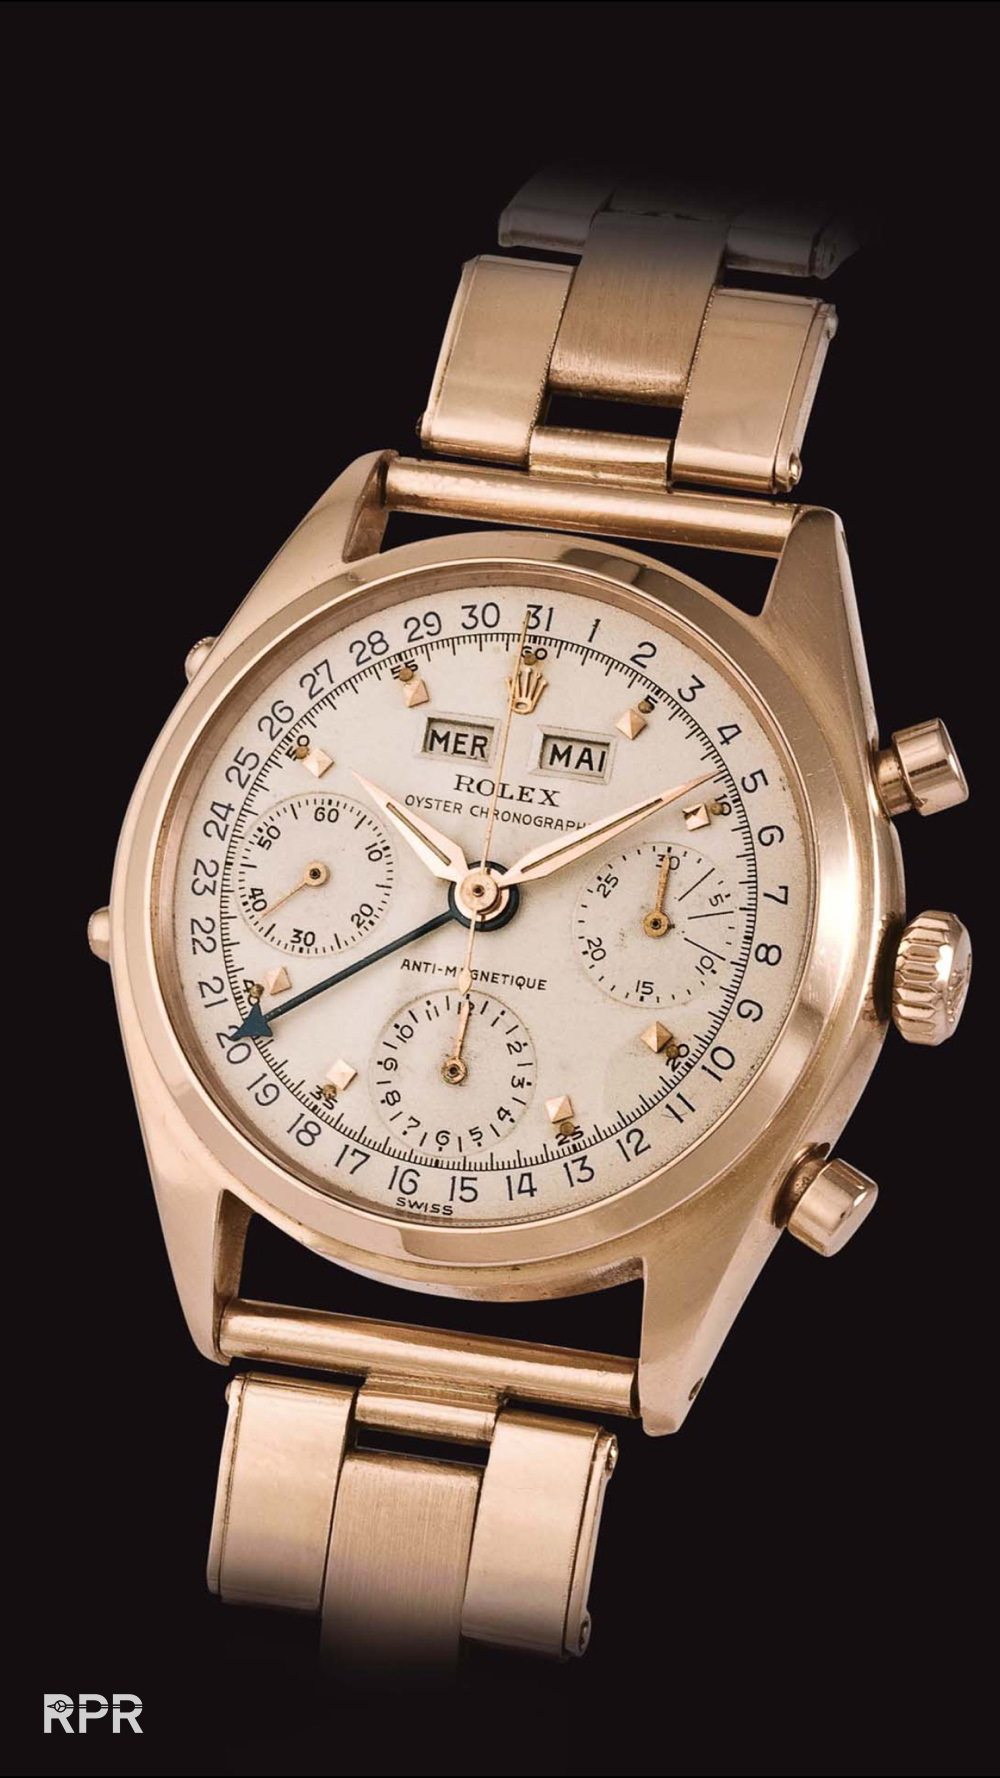 RPR_JG_6036_rolex_killy_rose